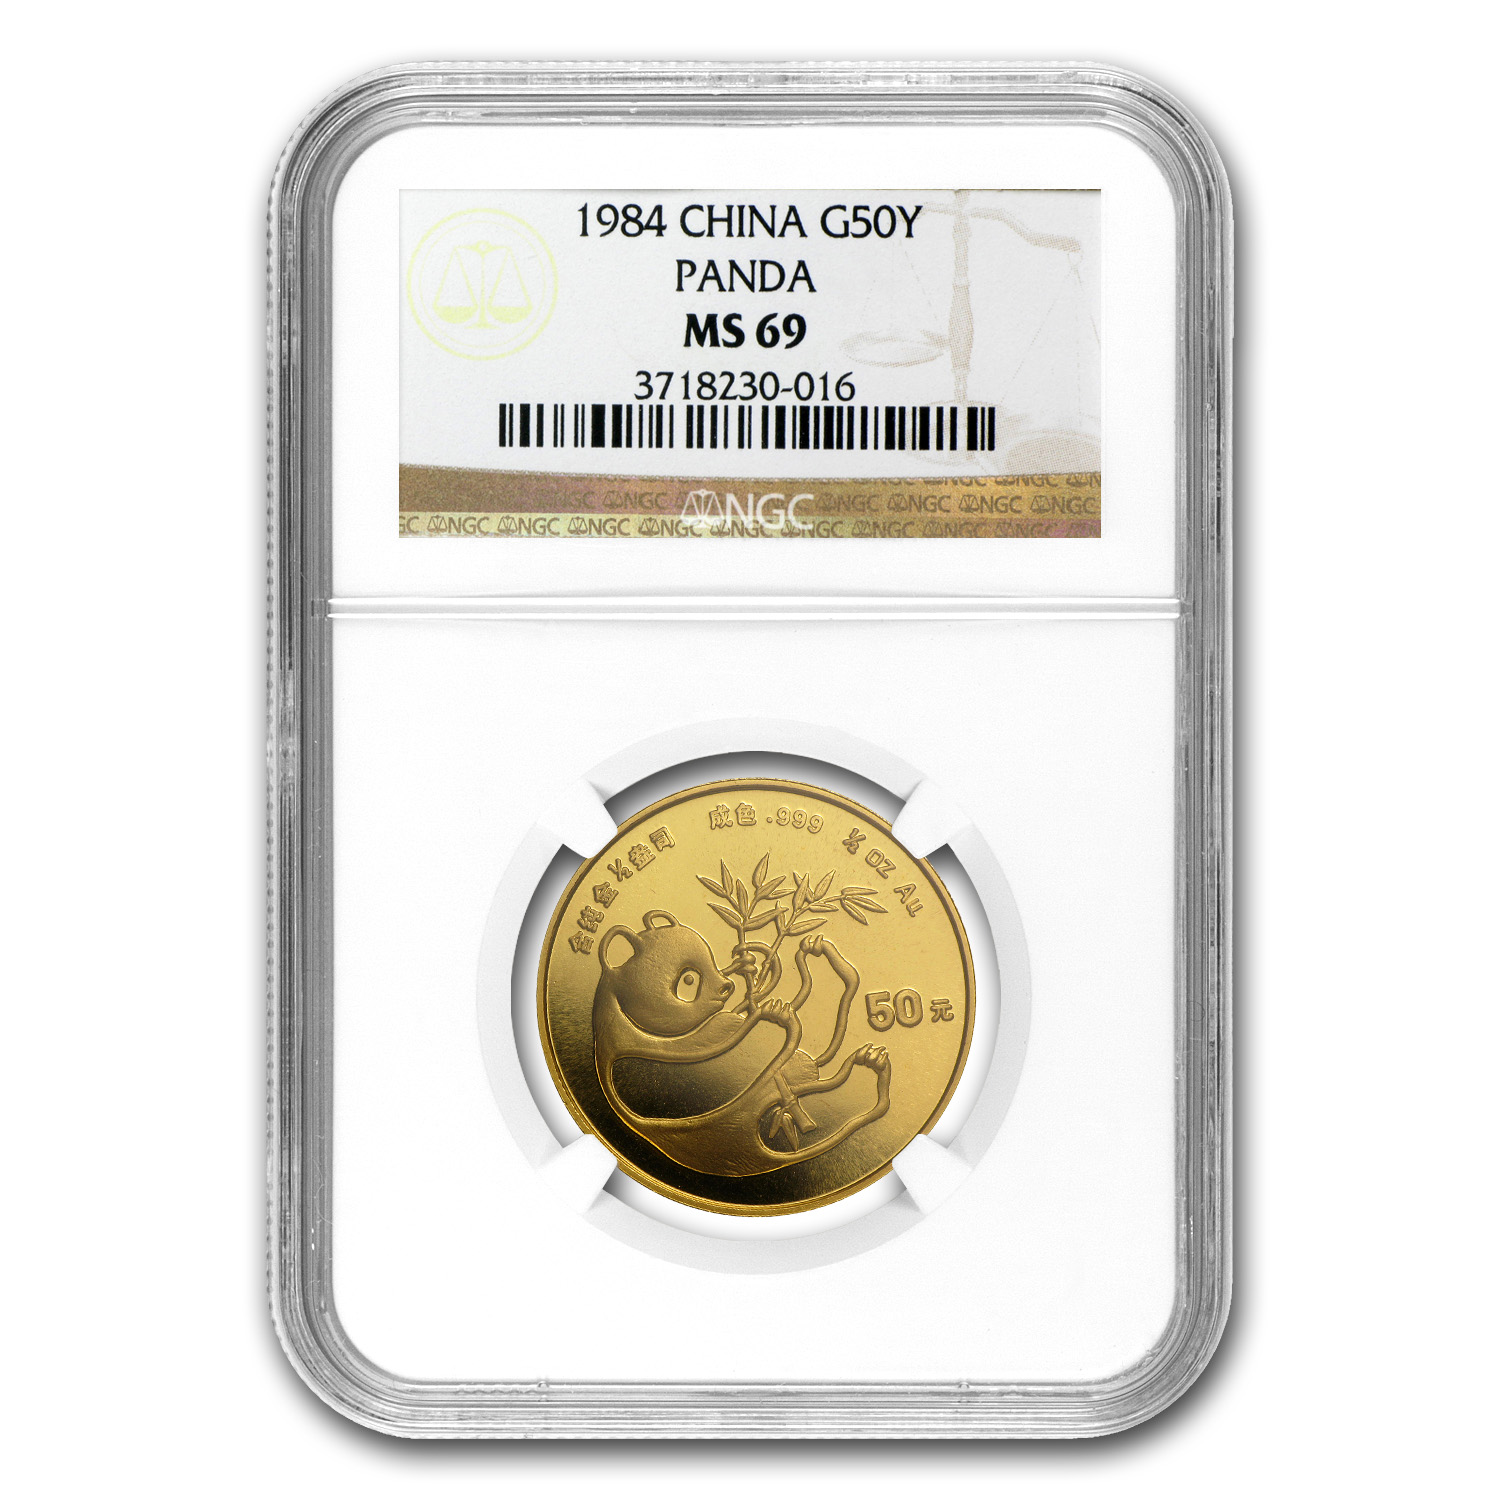 1984 (1/2 oz) Gold Chinese Pandas - MS-69 NGC